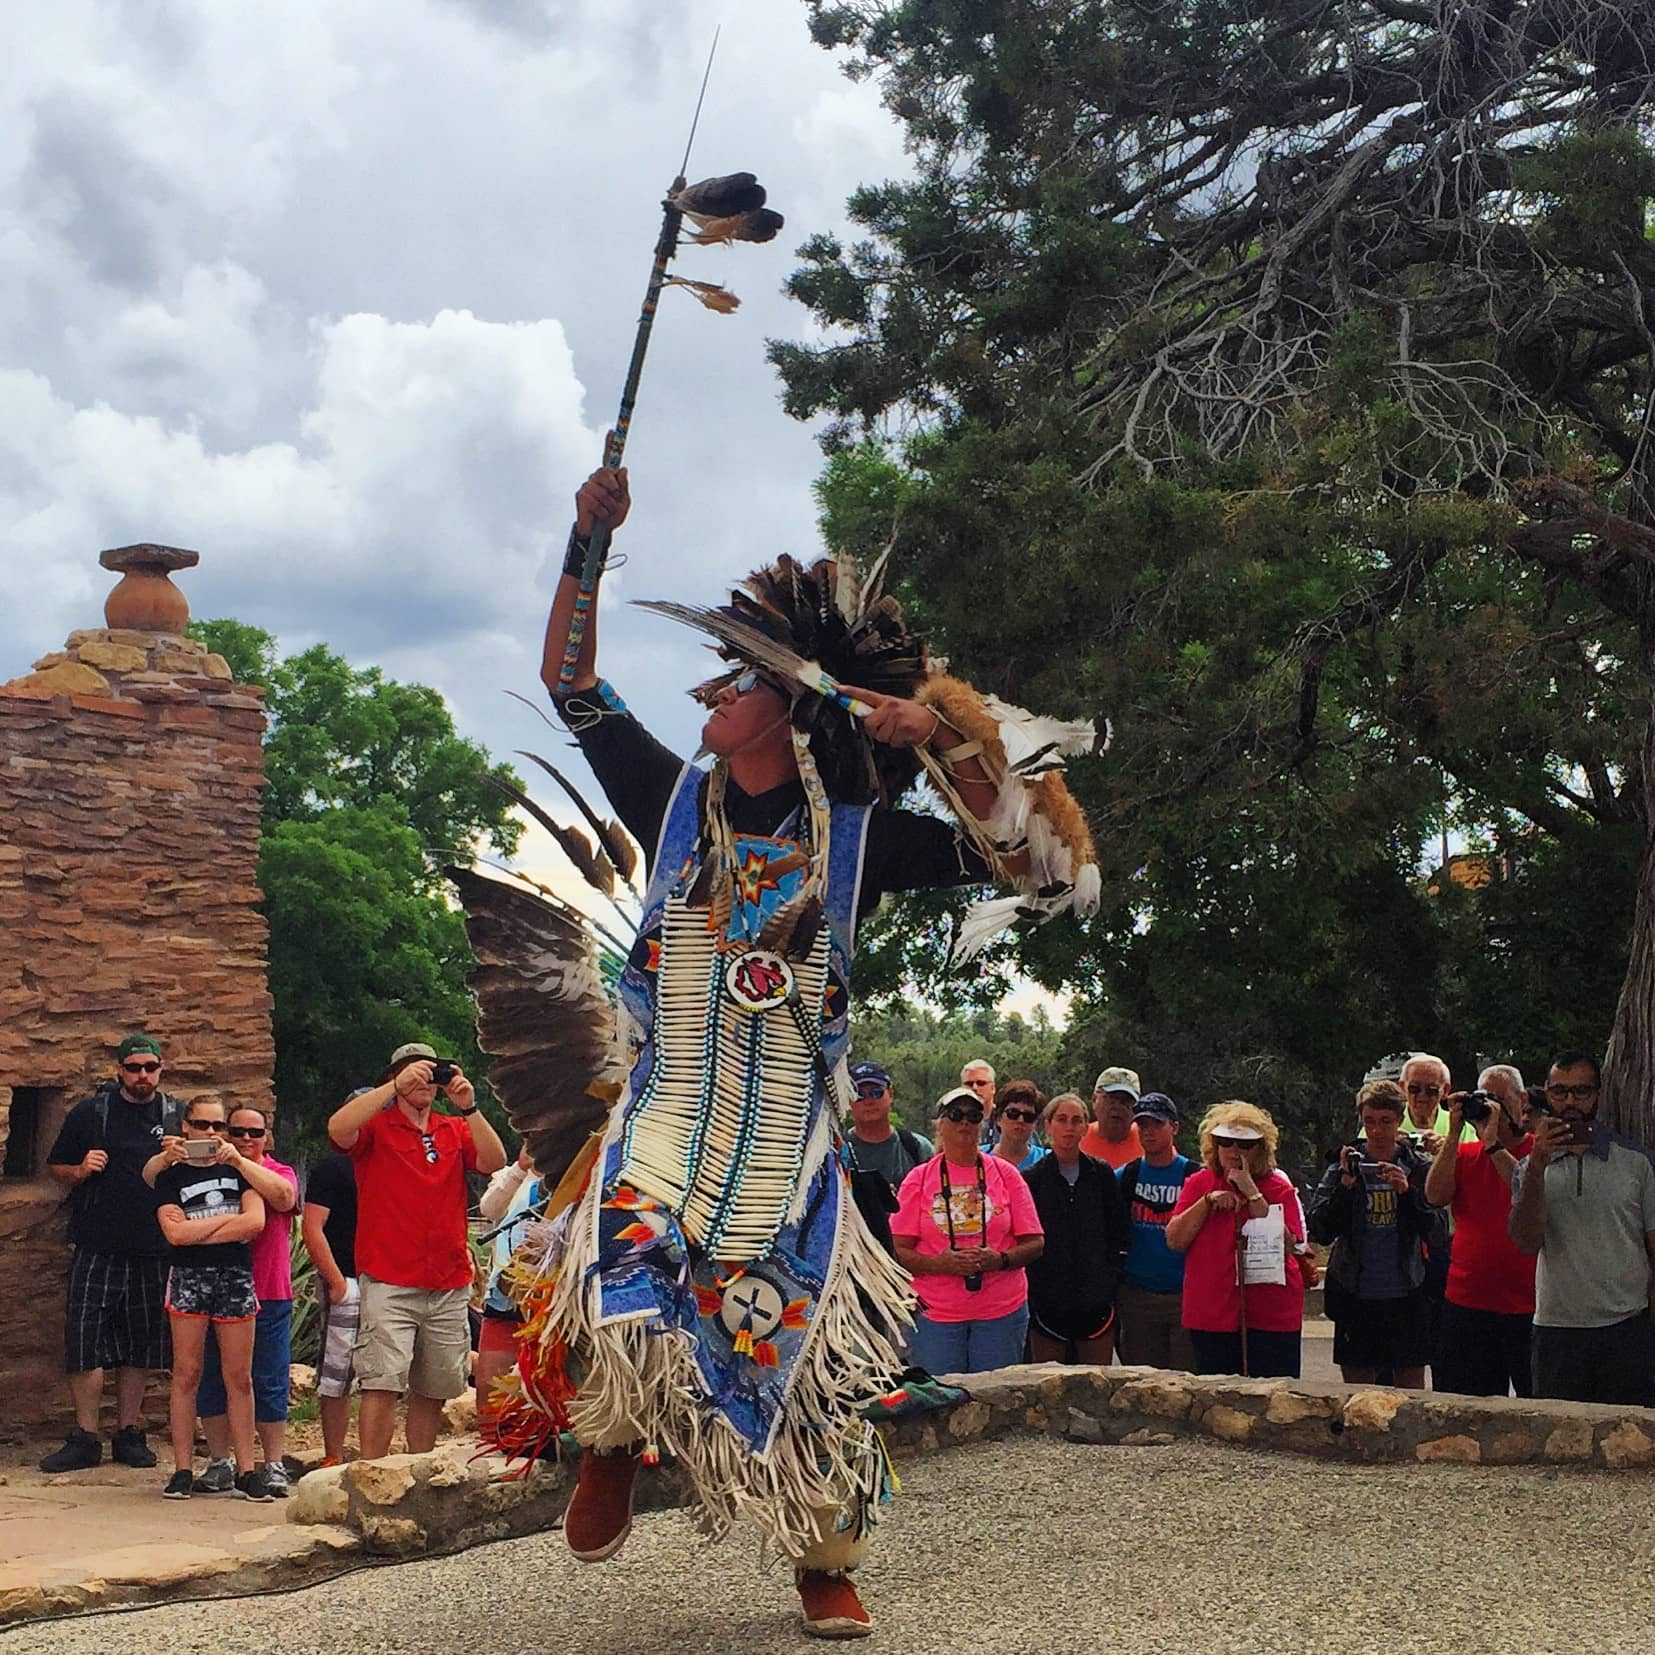 A Navajo troupe member performing a traditional dance near Hopi House at the South Rim